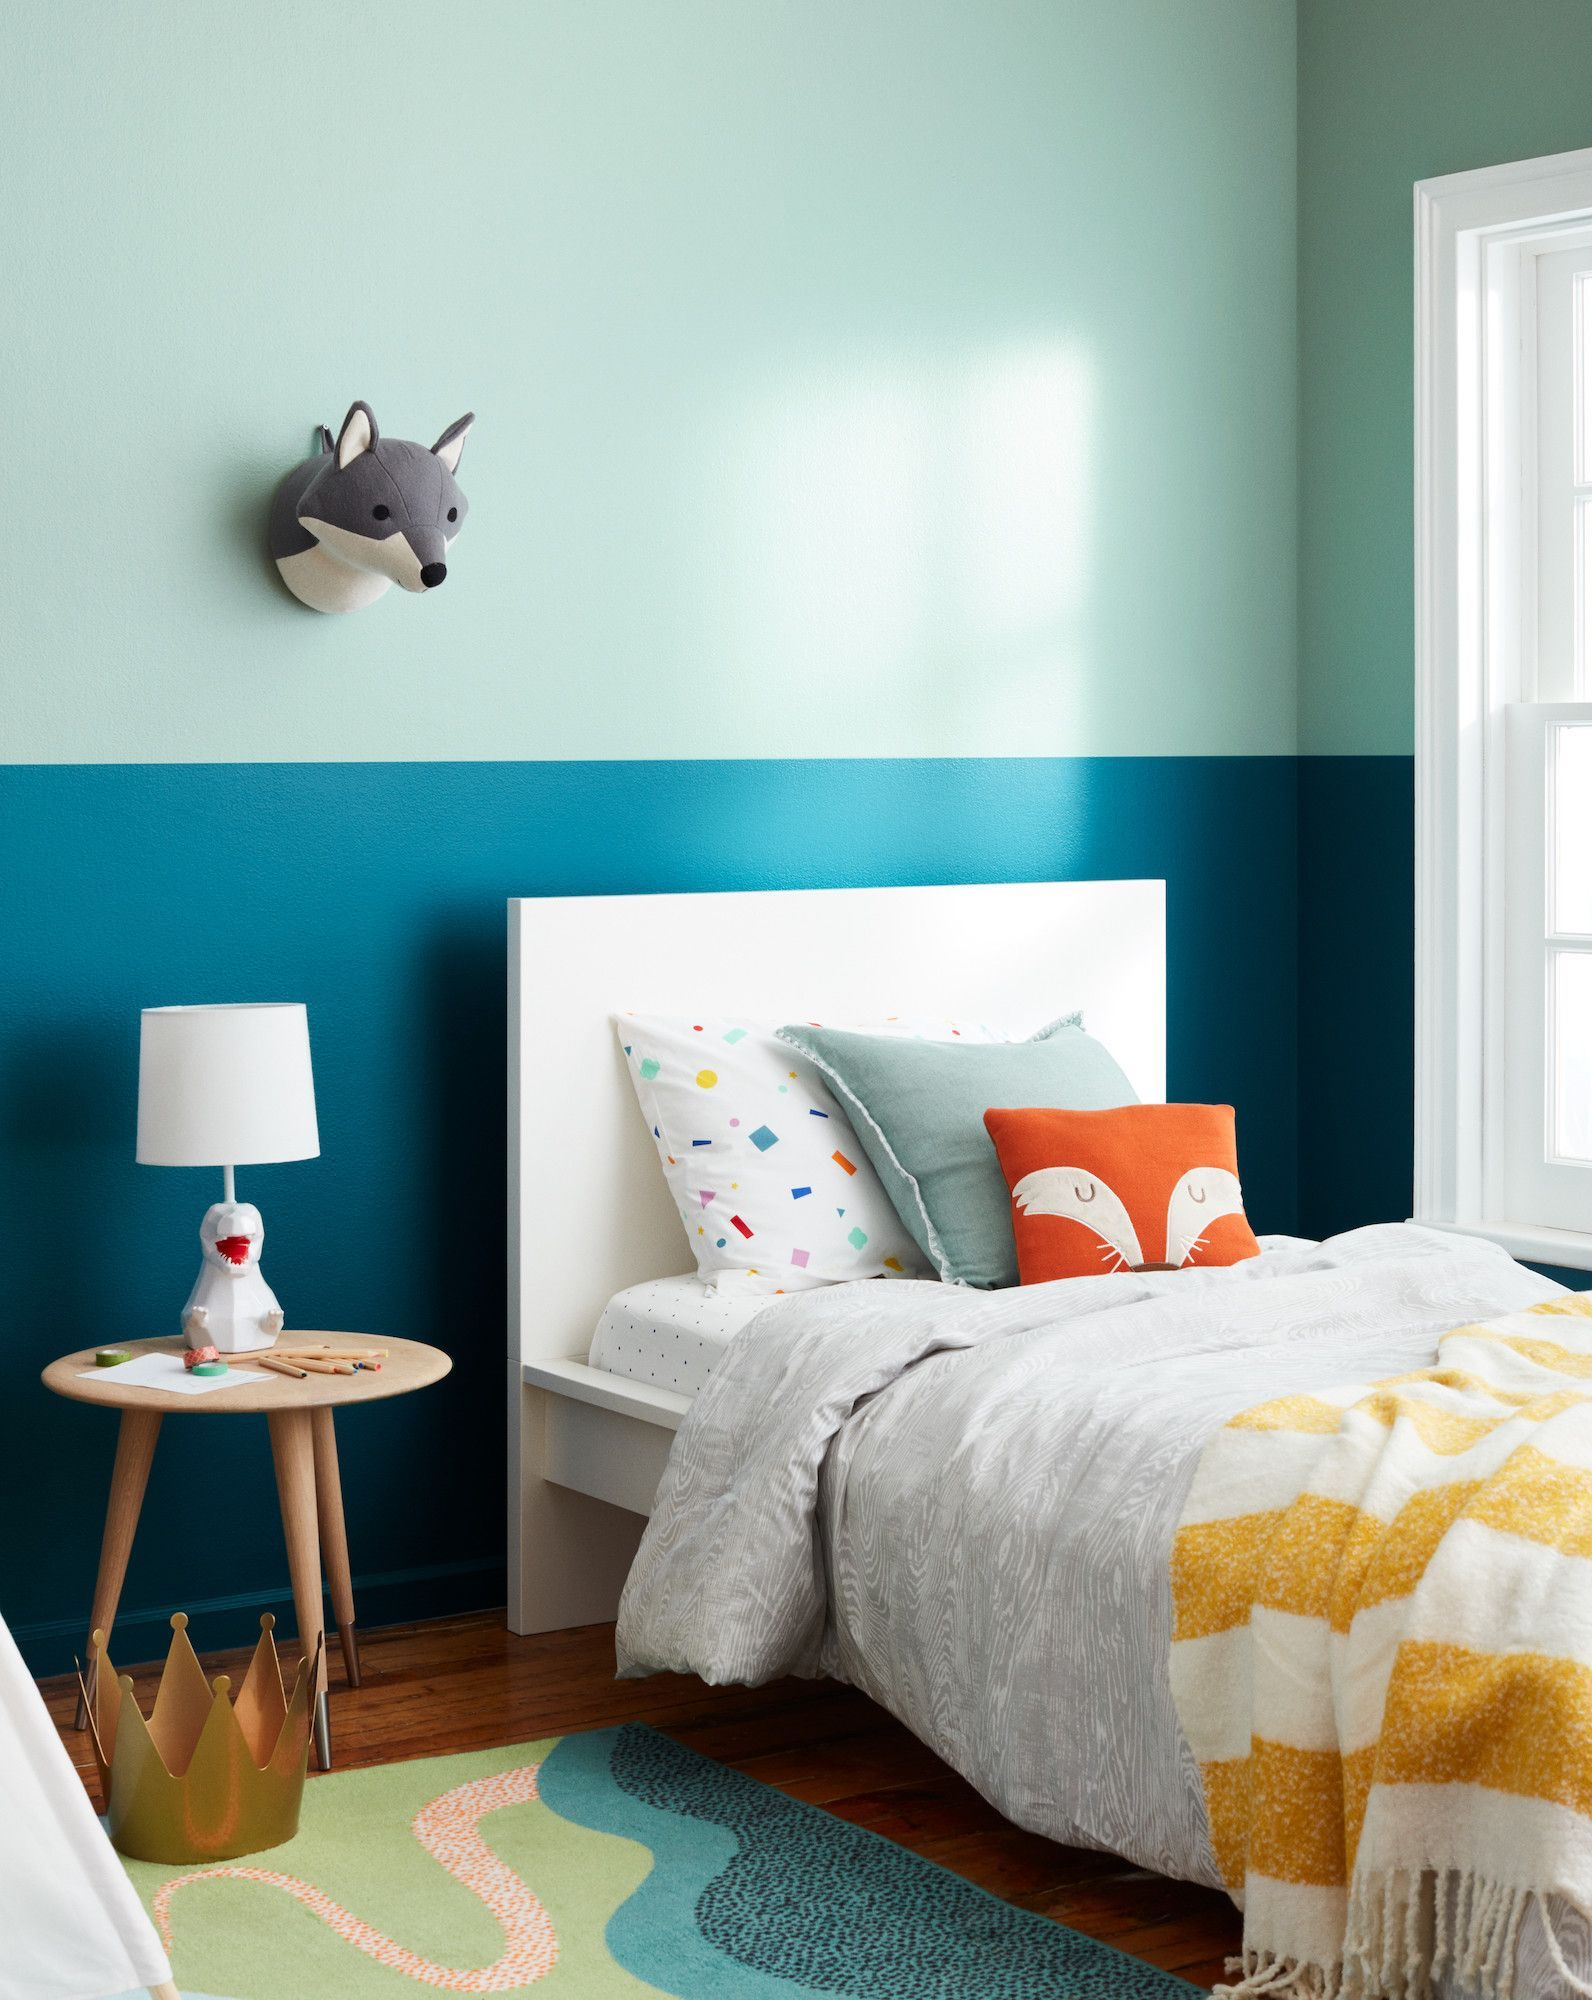 Views Vibrant Blue Green Paint Color Clare Best Bedroom Paint Colors Bedroom Design Kids Room Paint